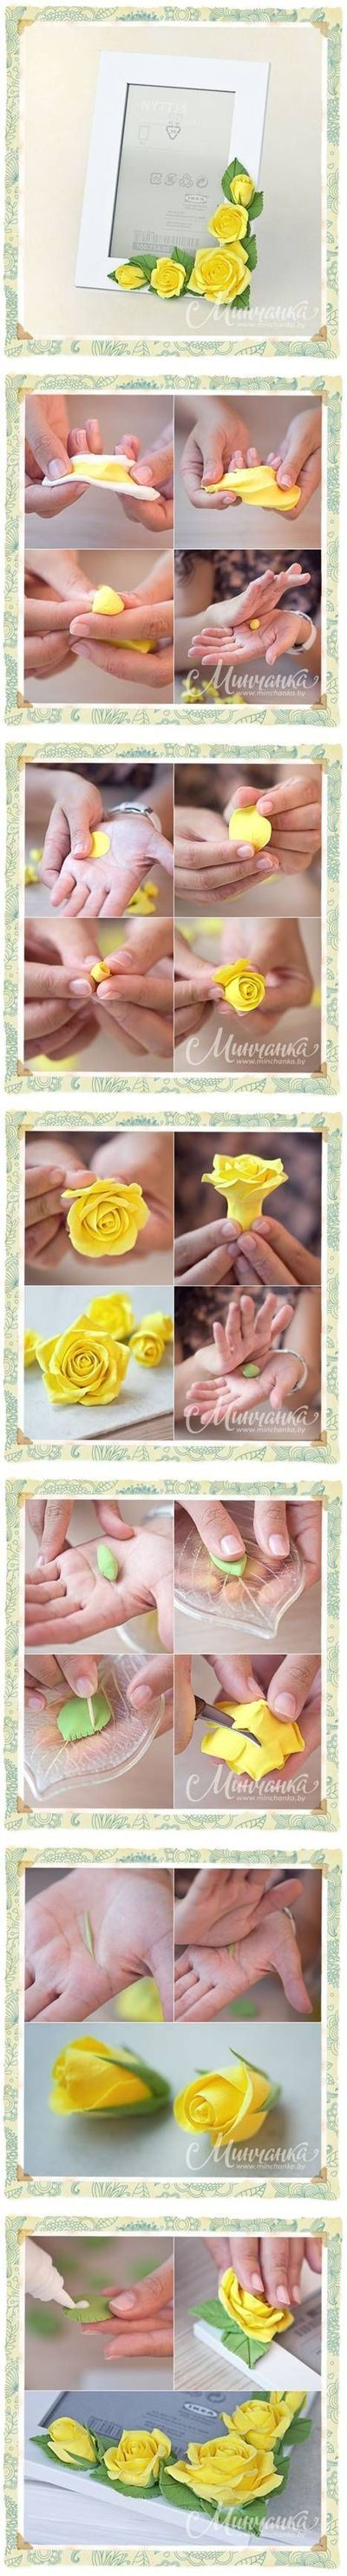 TUTORIAL - FIMO - CORNICE ROSE GIALLE